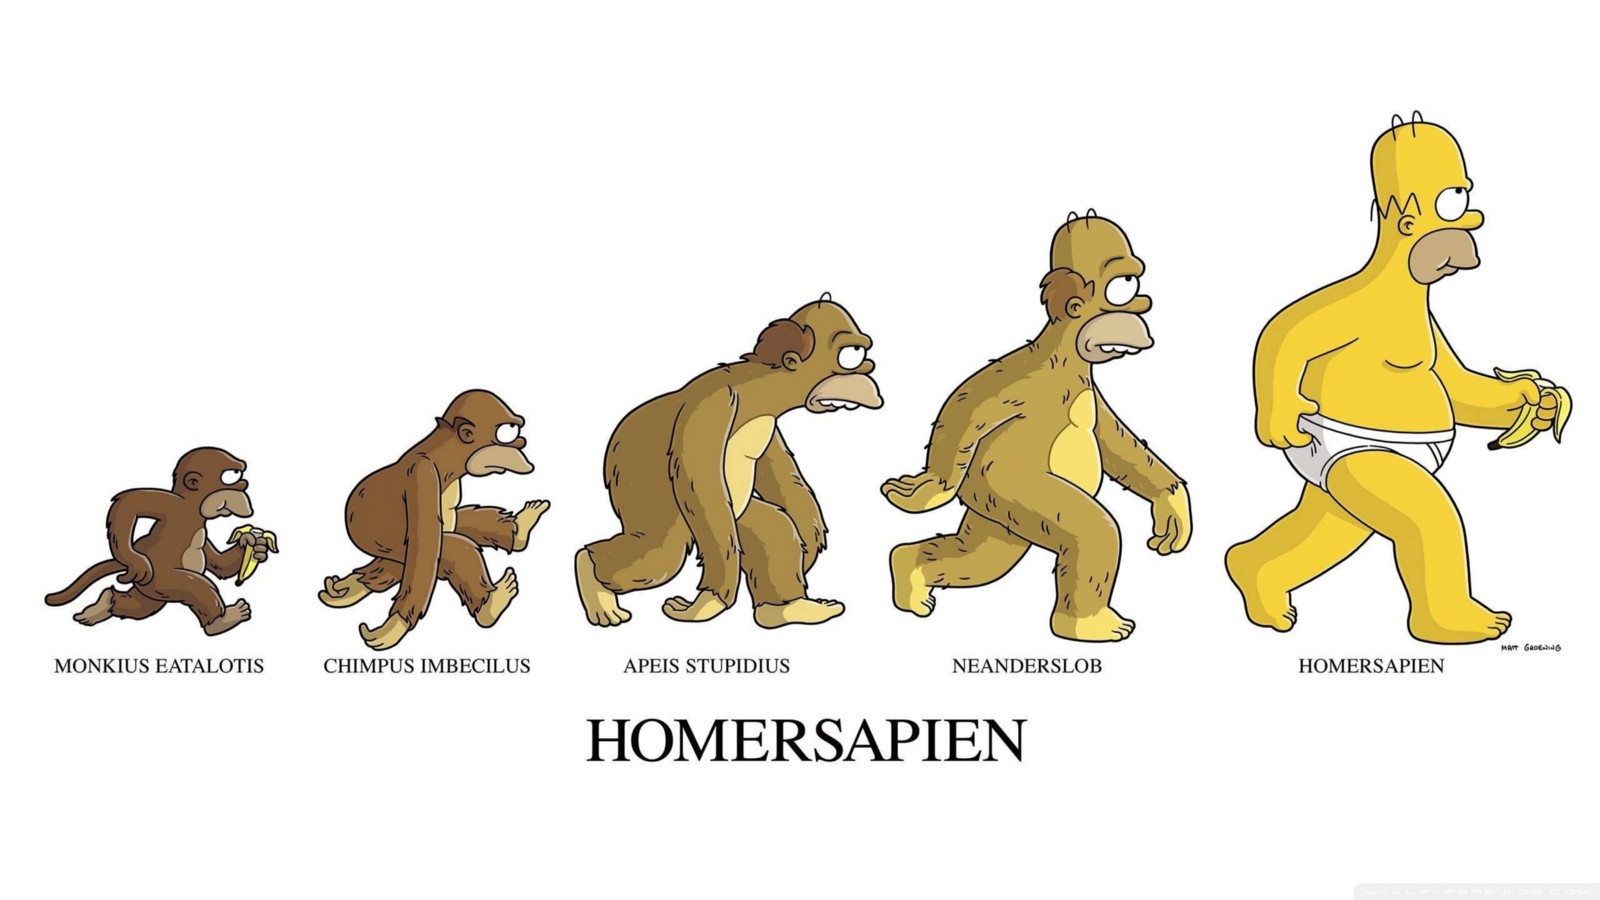 the reasons why darwins theory of evolution is unacceptable by 2030